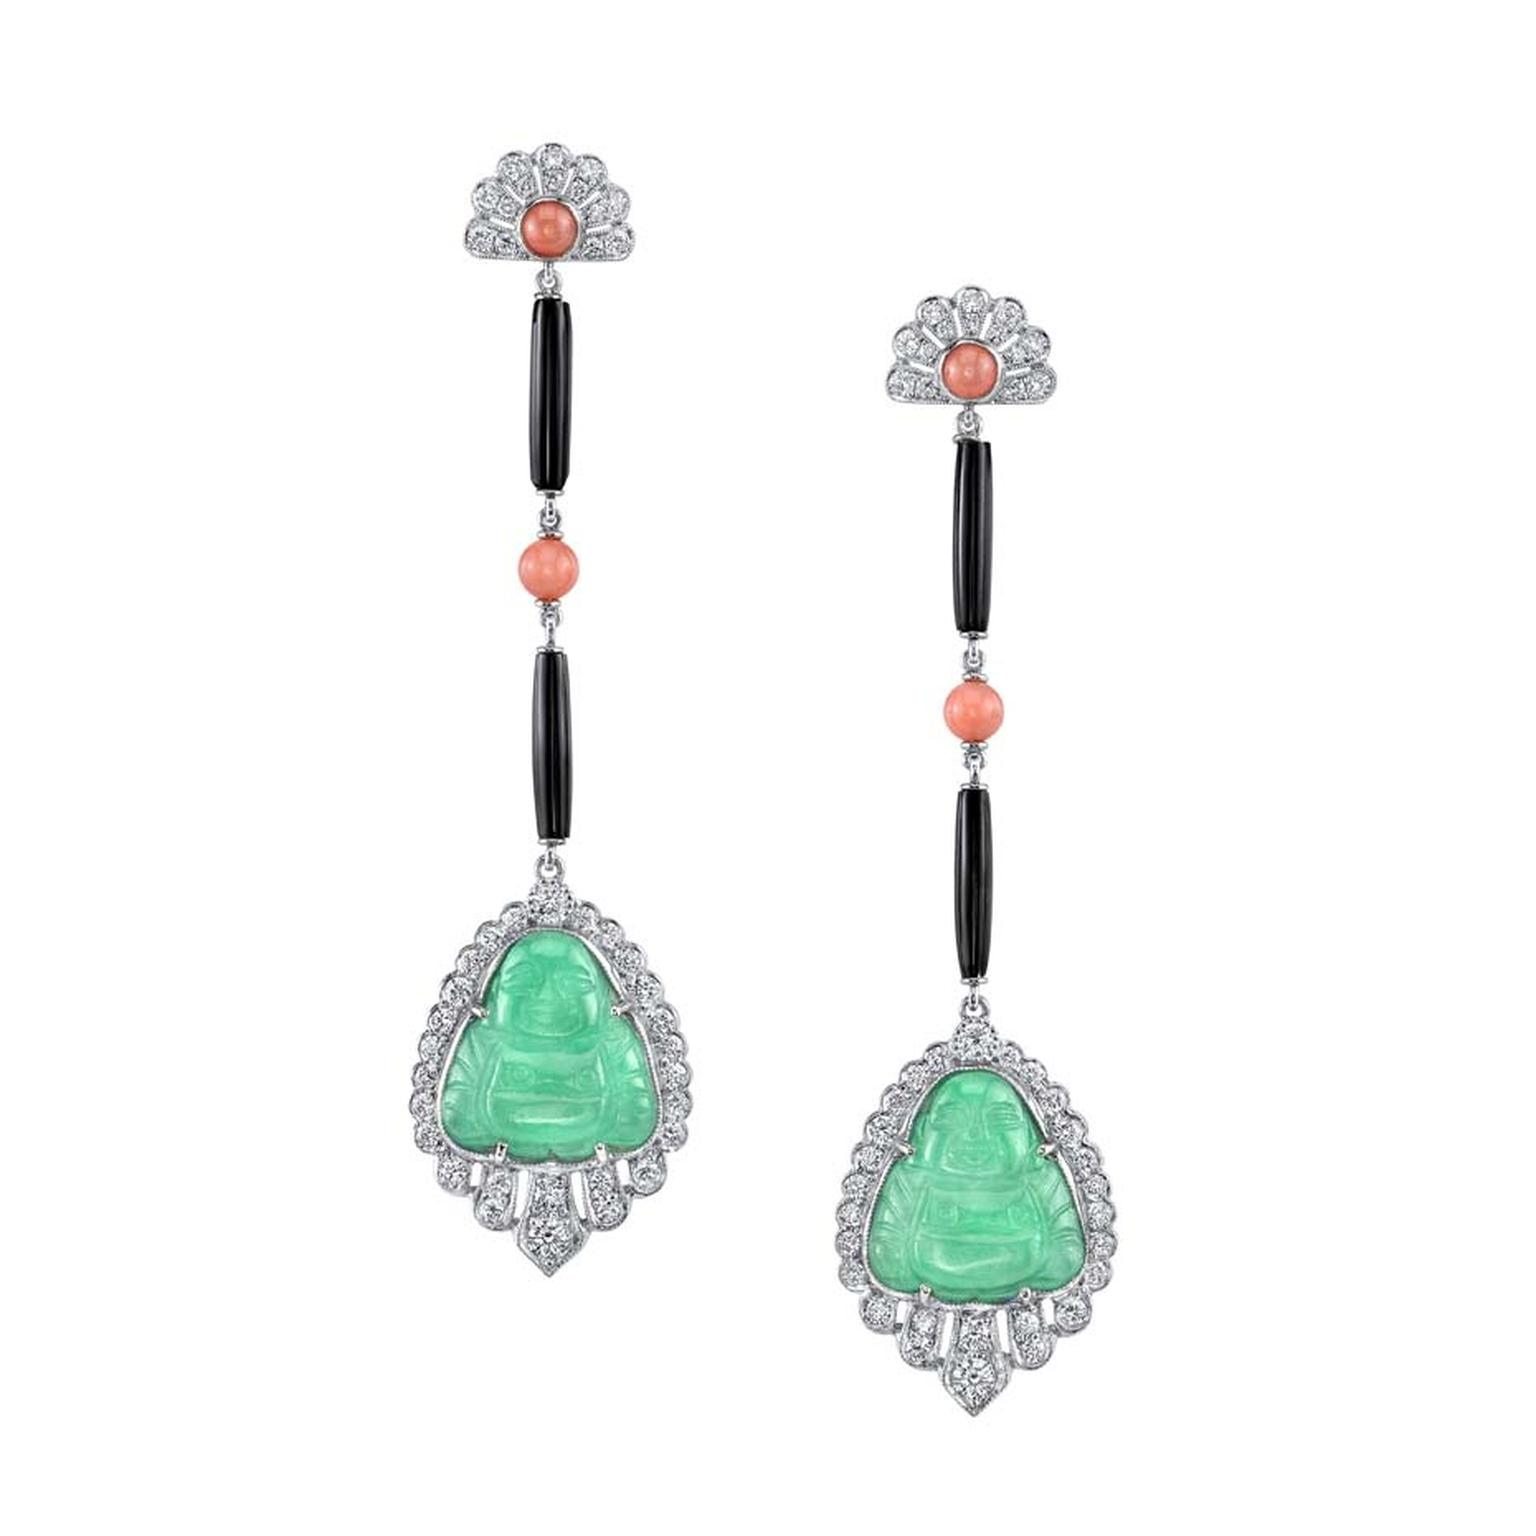 The vintage-inspired diamond, jade, coral and platinum Neil Lane earrings worn by Jennifer Lawrence at the Golden Globe Awards 2014